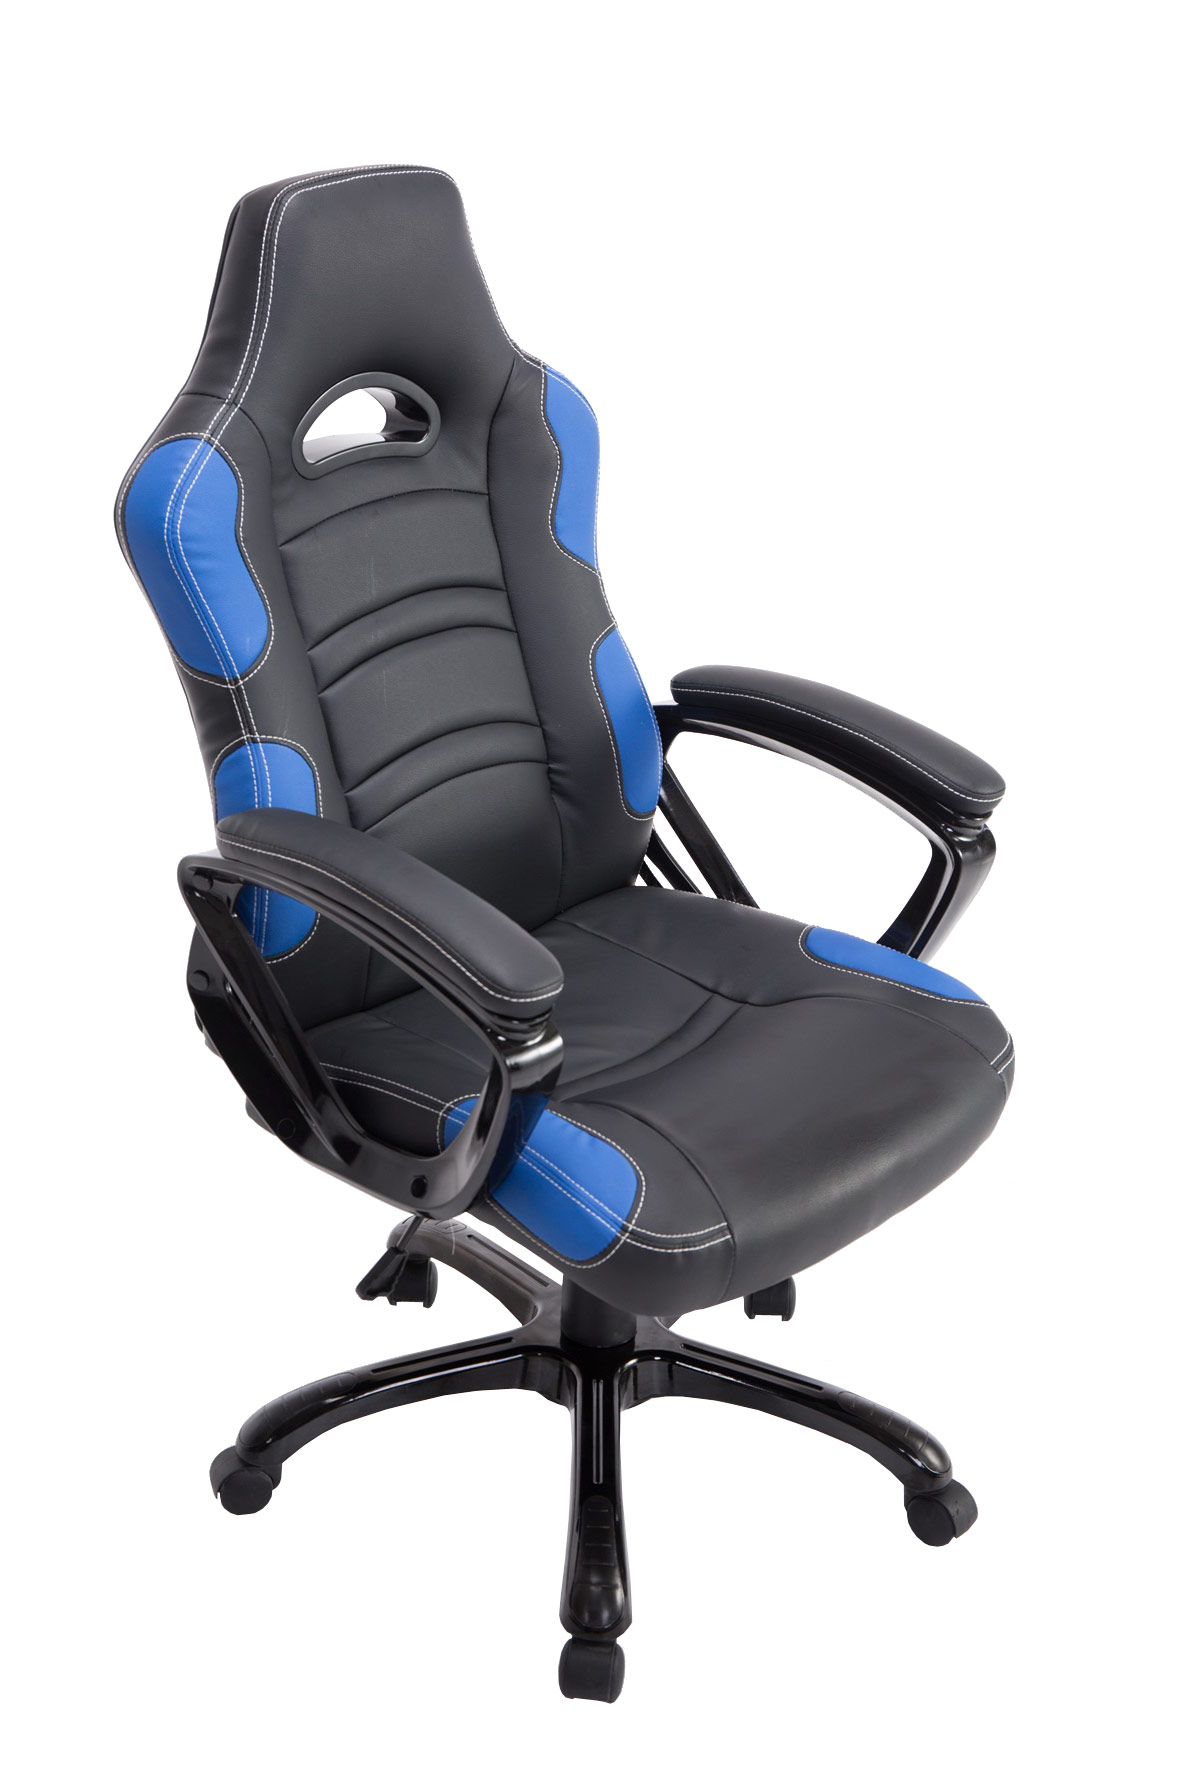 Gamer Sessel 150 Kg Bürostuhl Ricardo Xl Belastbar 150 Kg Racing Sport Gaming